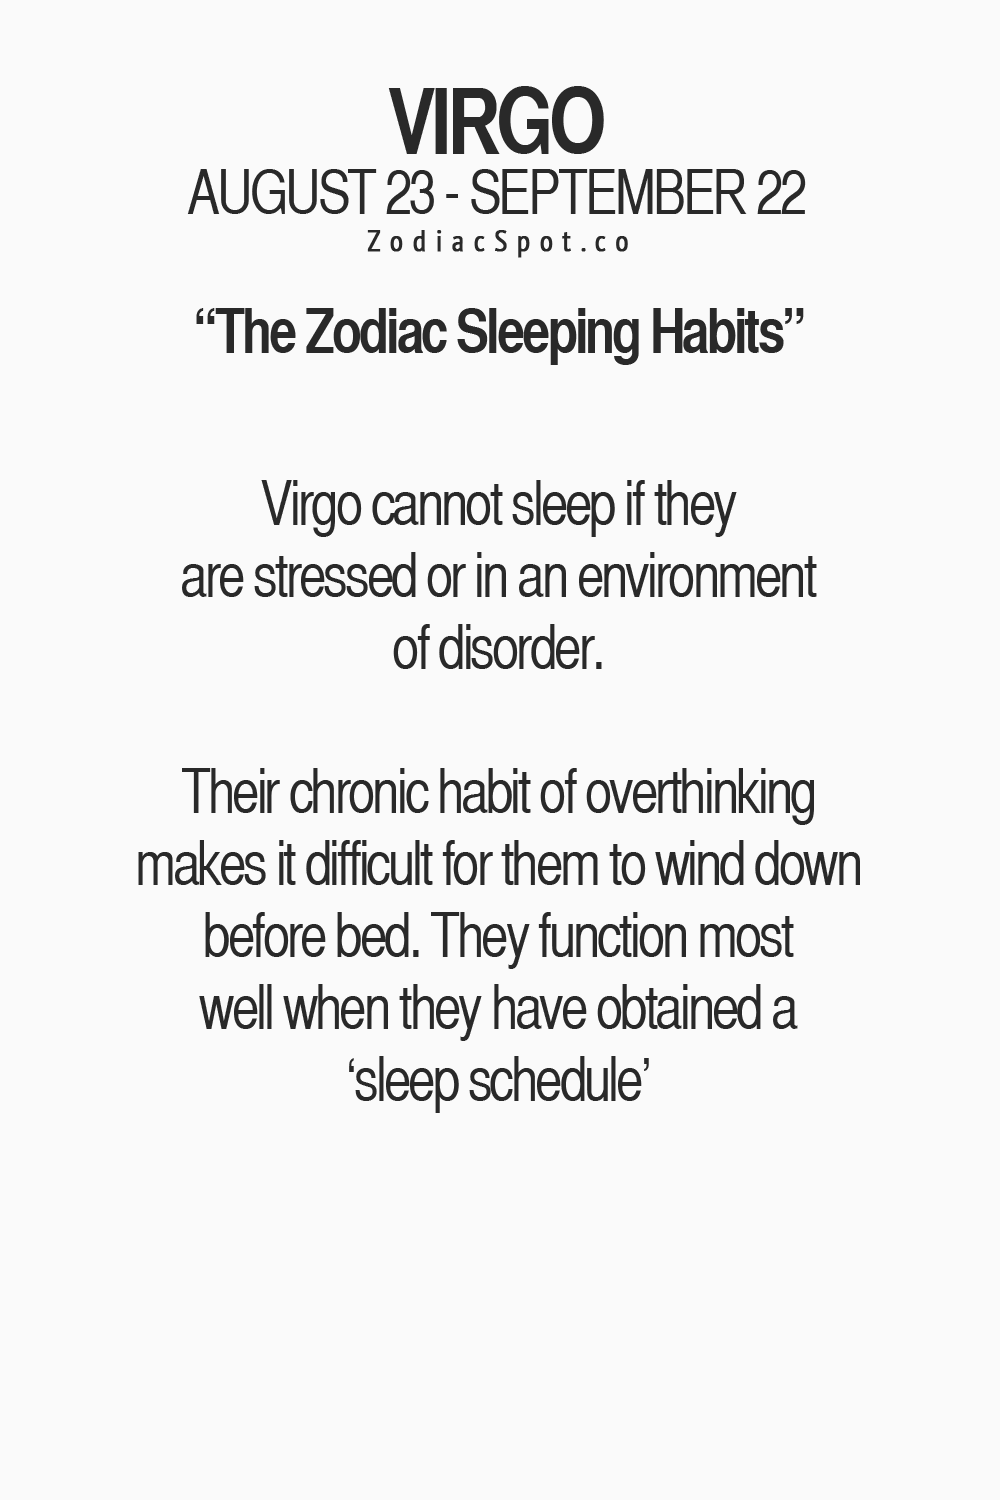 THis explains a lot XD ZodiacSpot - Your all-in-one source